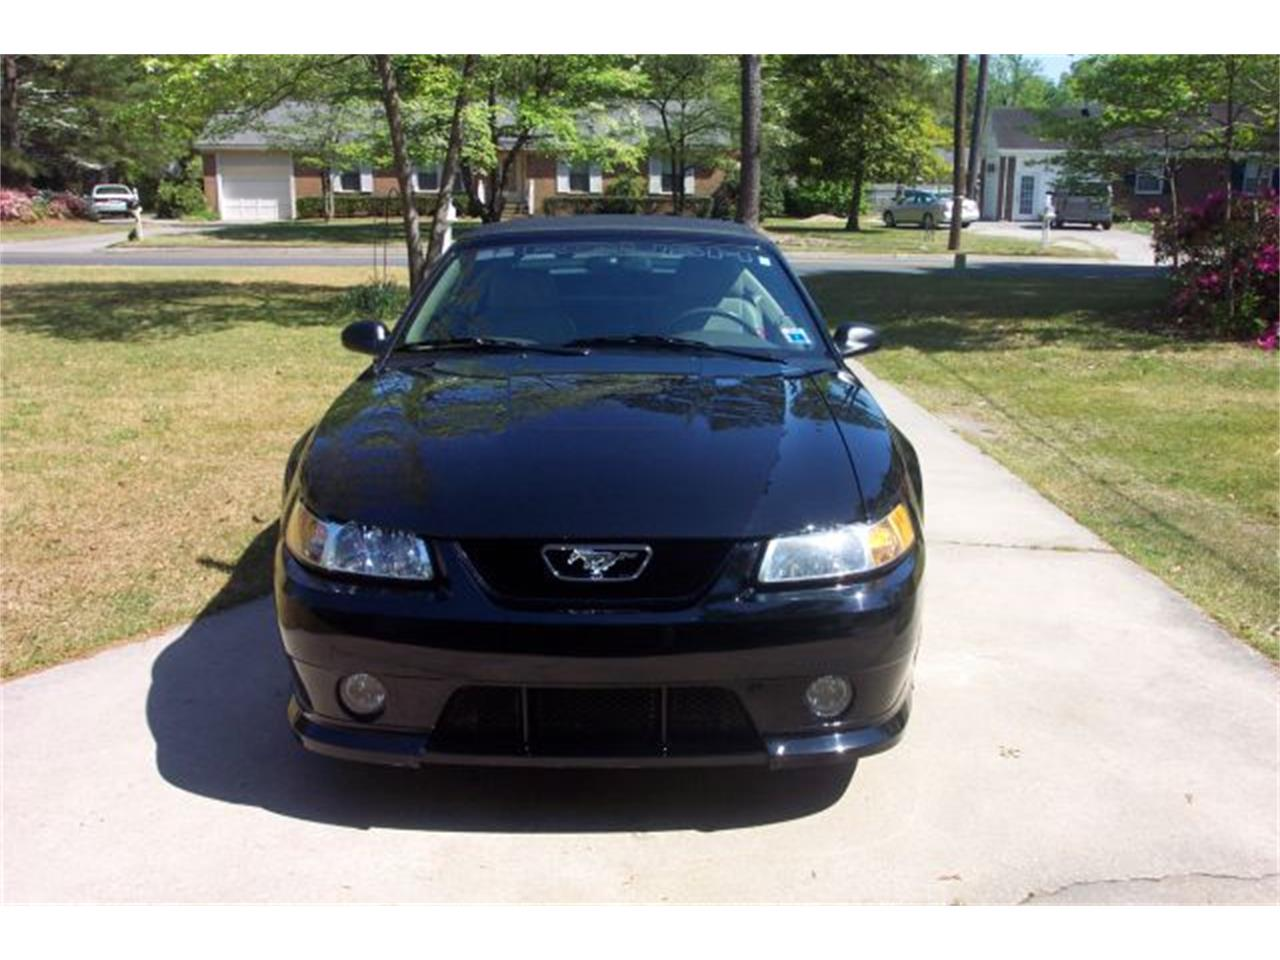 Large Picture of '00 Mustang (Roush) - $55,000.00 Offered by a Private Seller - GAM7